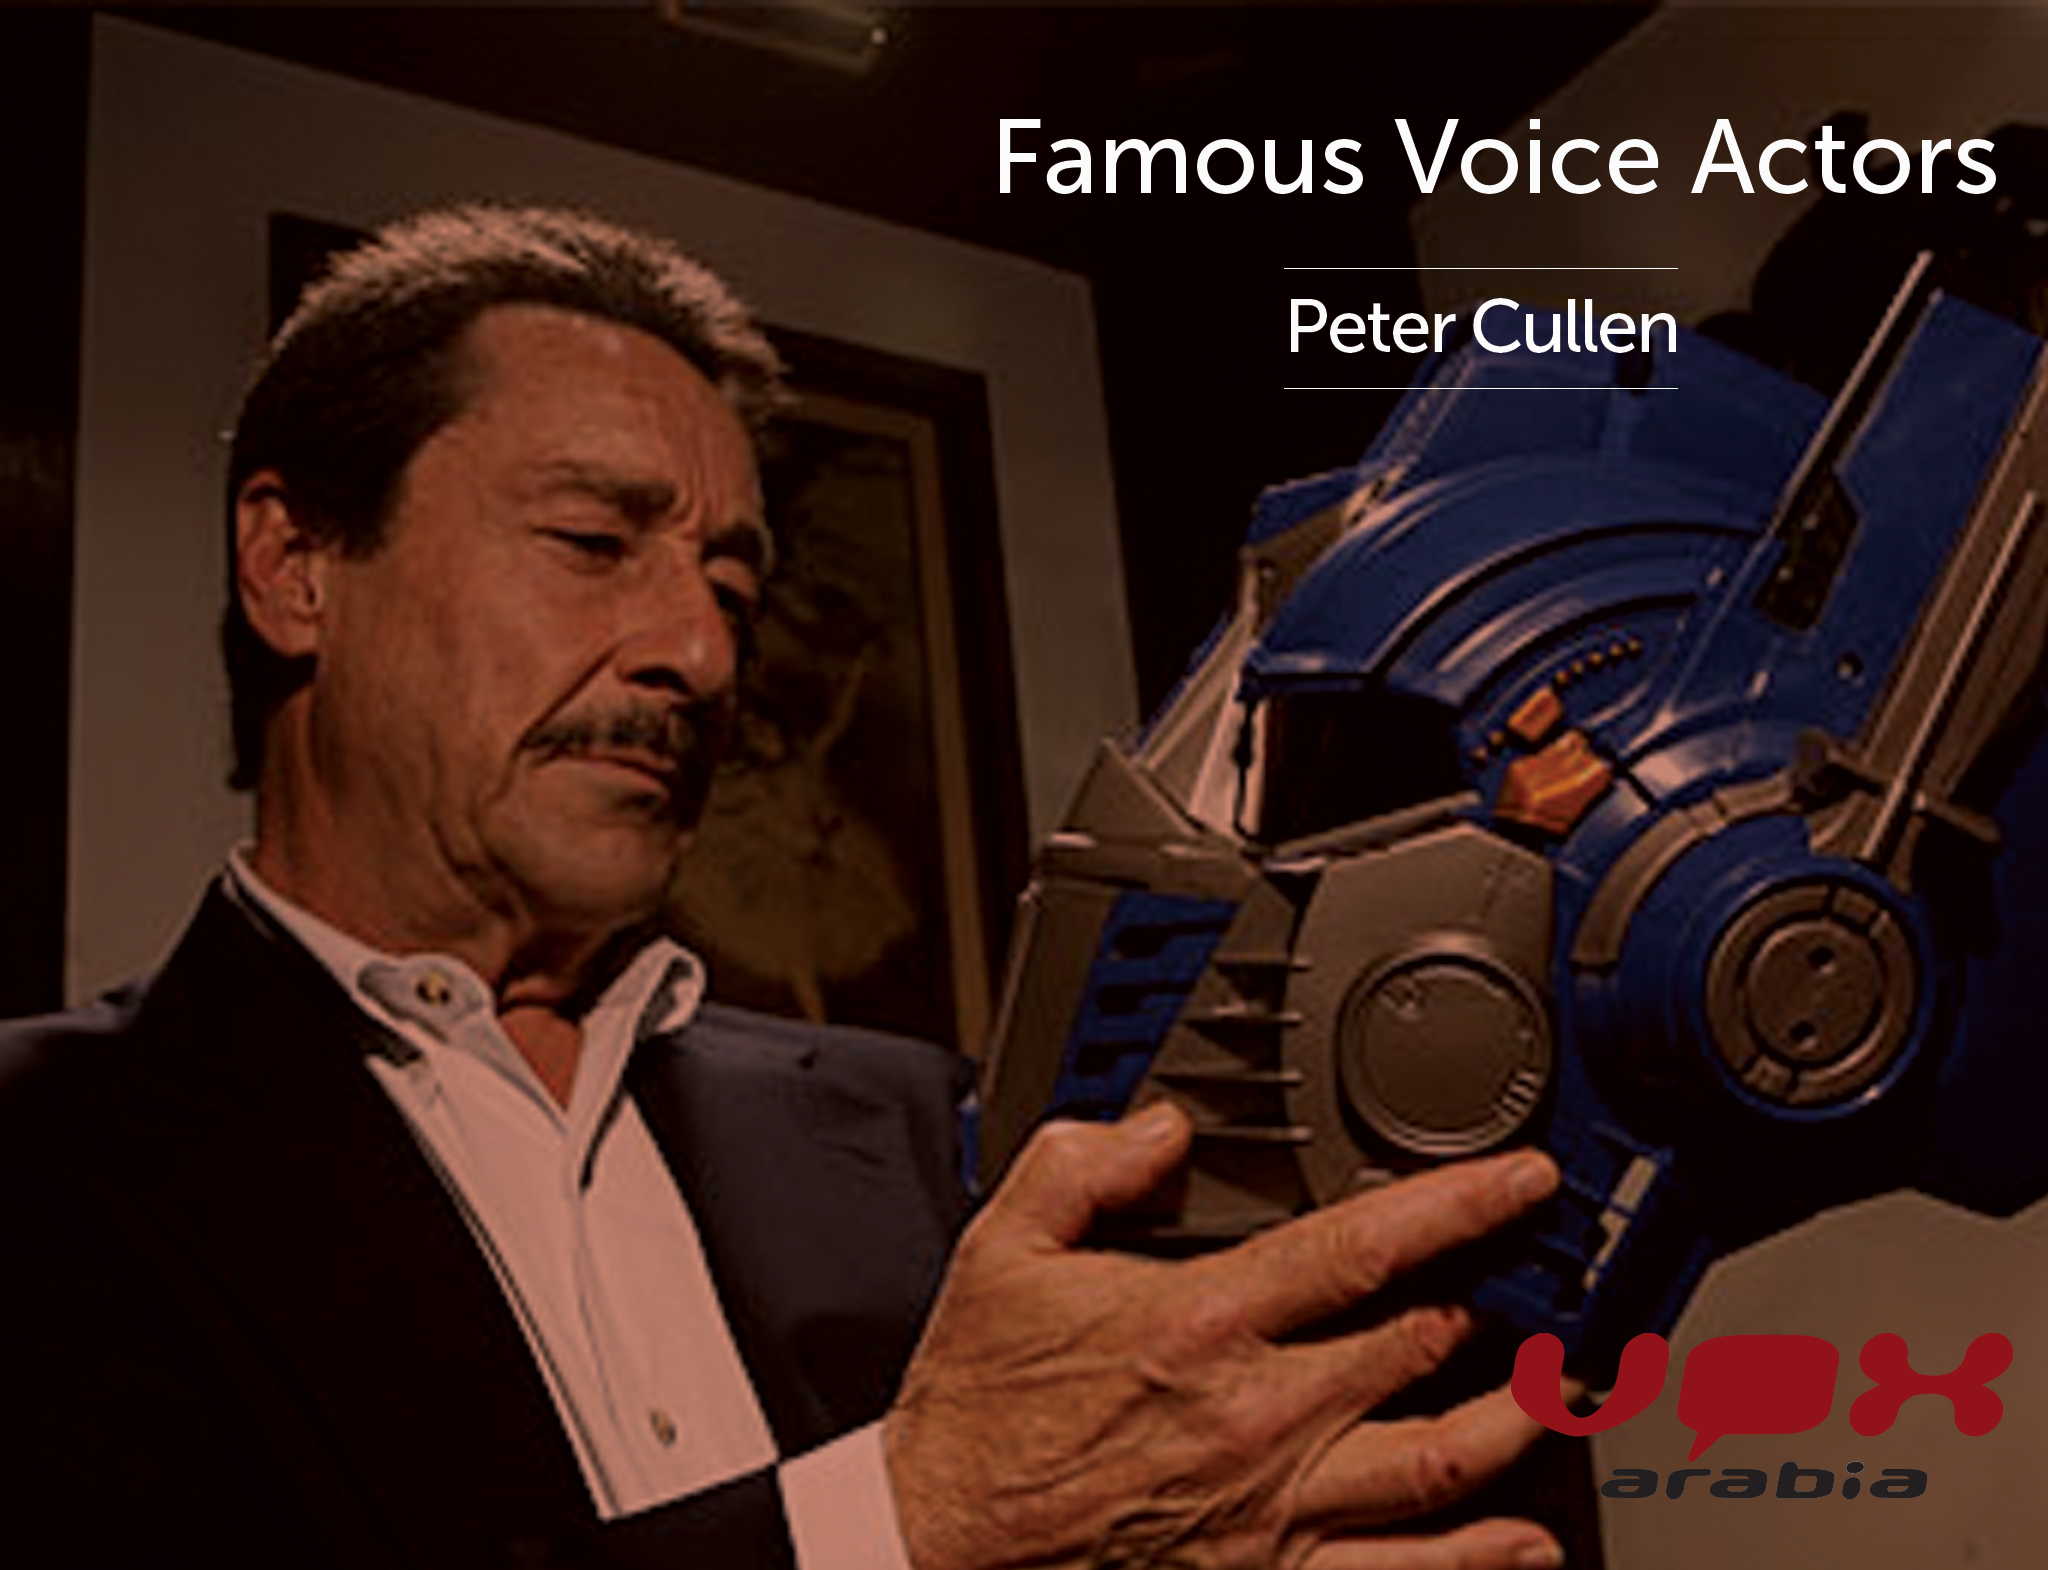 FAMOUS VOICE ACTORS | VOX ARABIA | PETER CULLEN